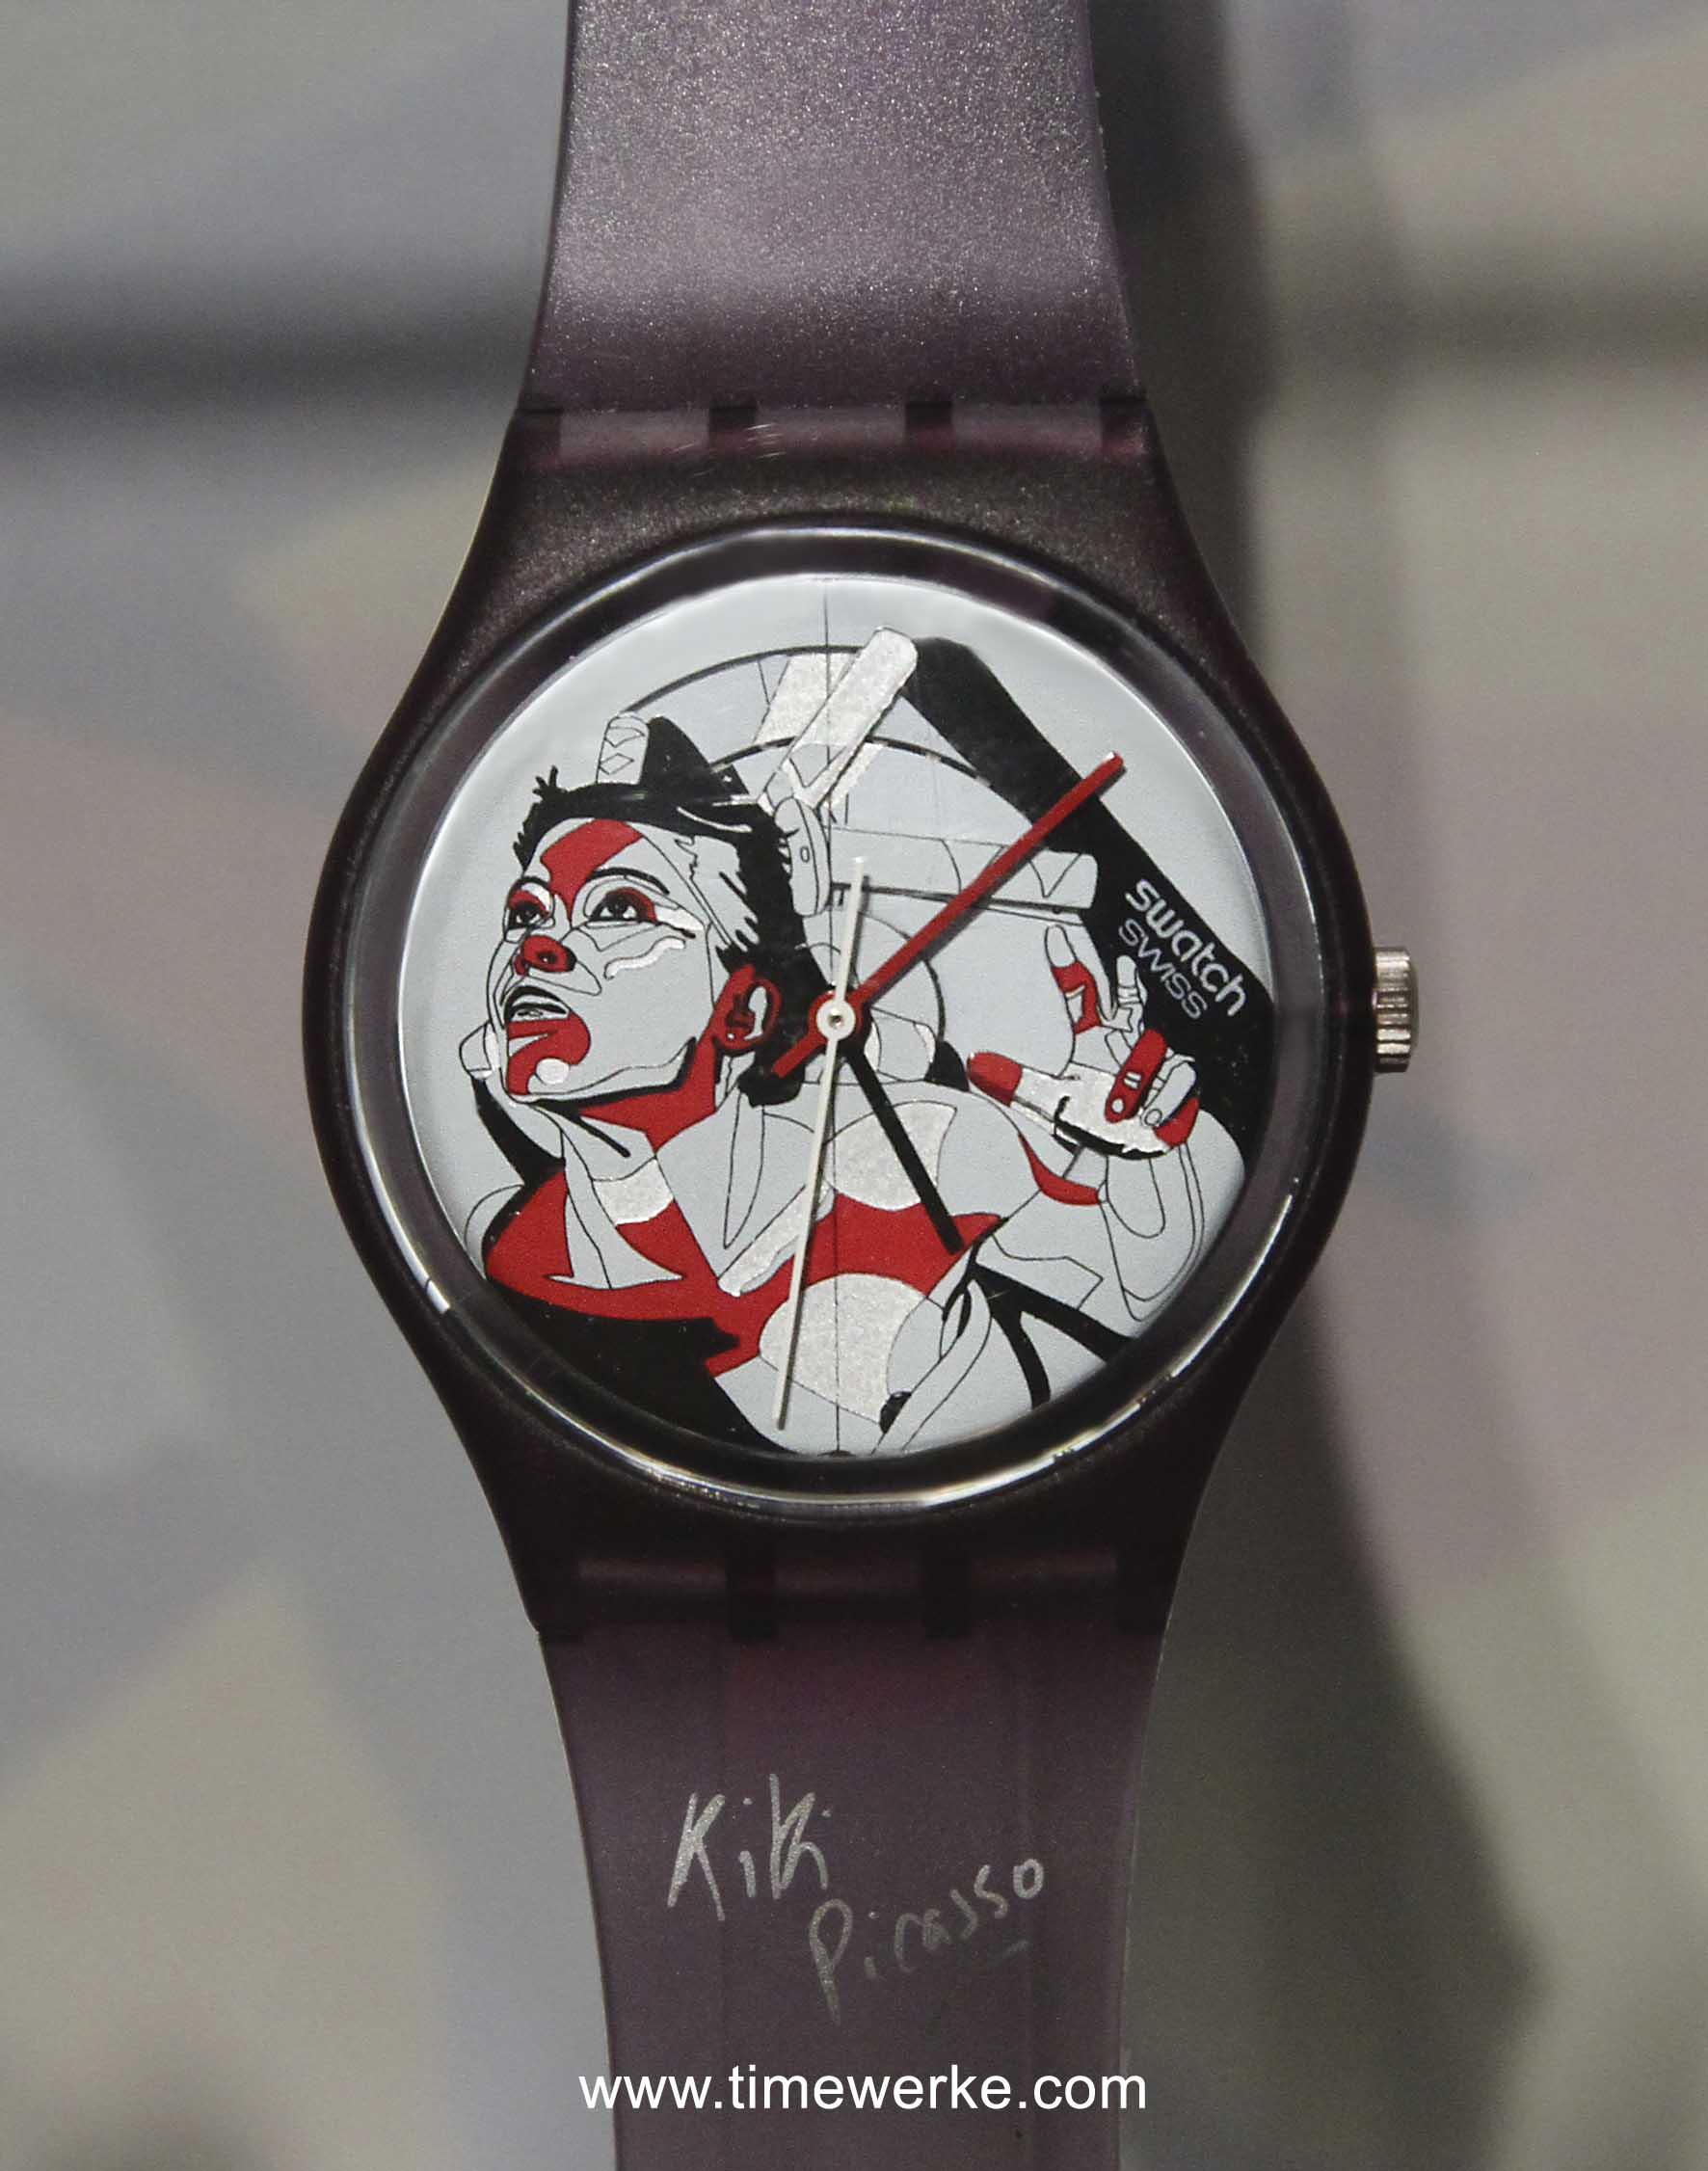 The extremely rare Swatch Kiki Picasso (Code: GZ008) which was launched in 1985 and limited to 140 pieces is the first Swatch Art Special. Photo: © TANG Portfolio, at BaselWorld 2013